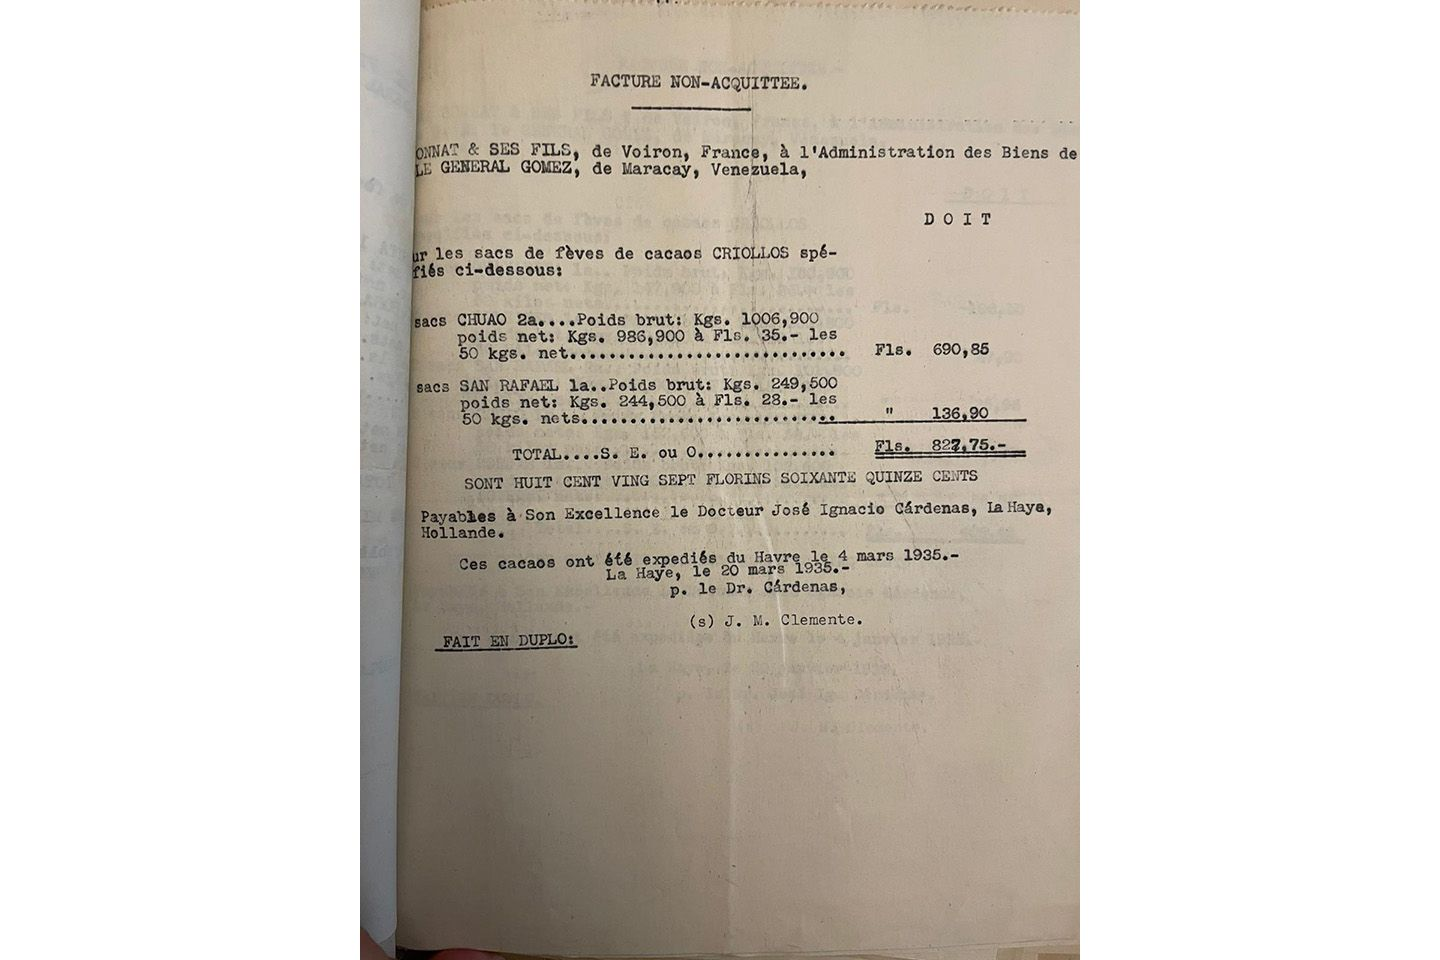 A 1935 invoice to Bonnat for beans from Venezuela.